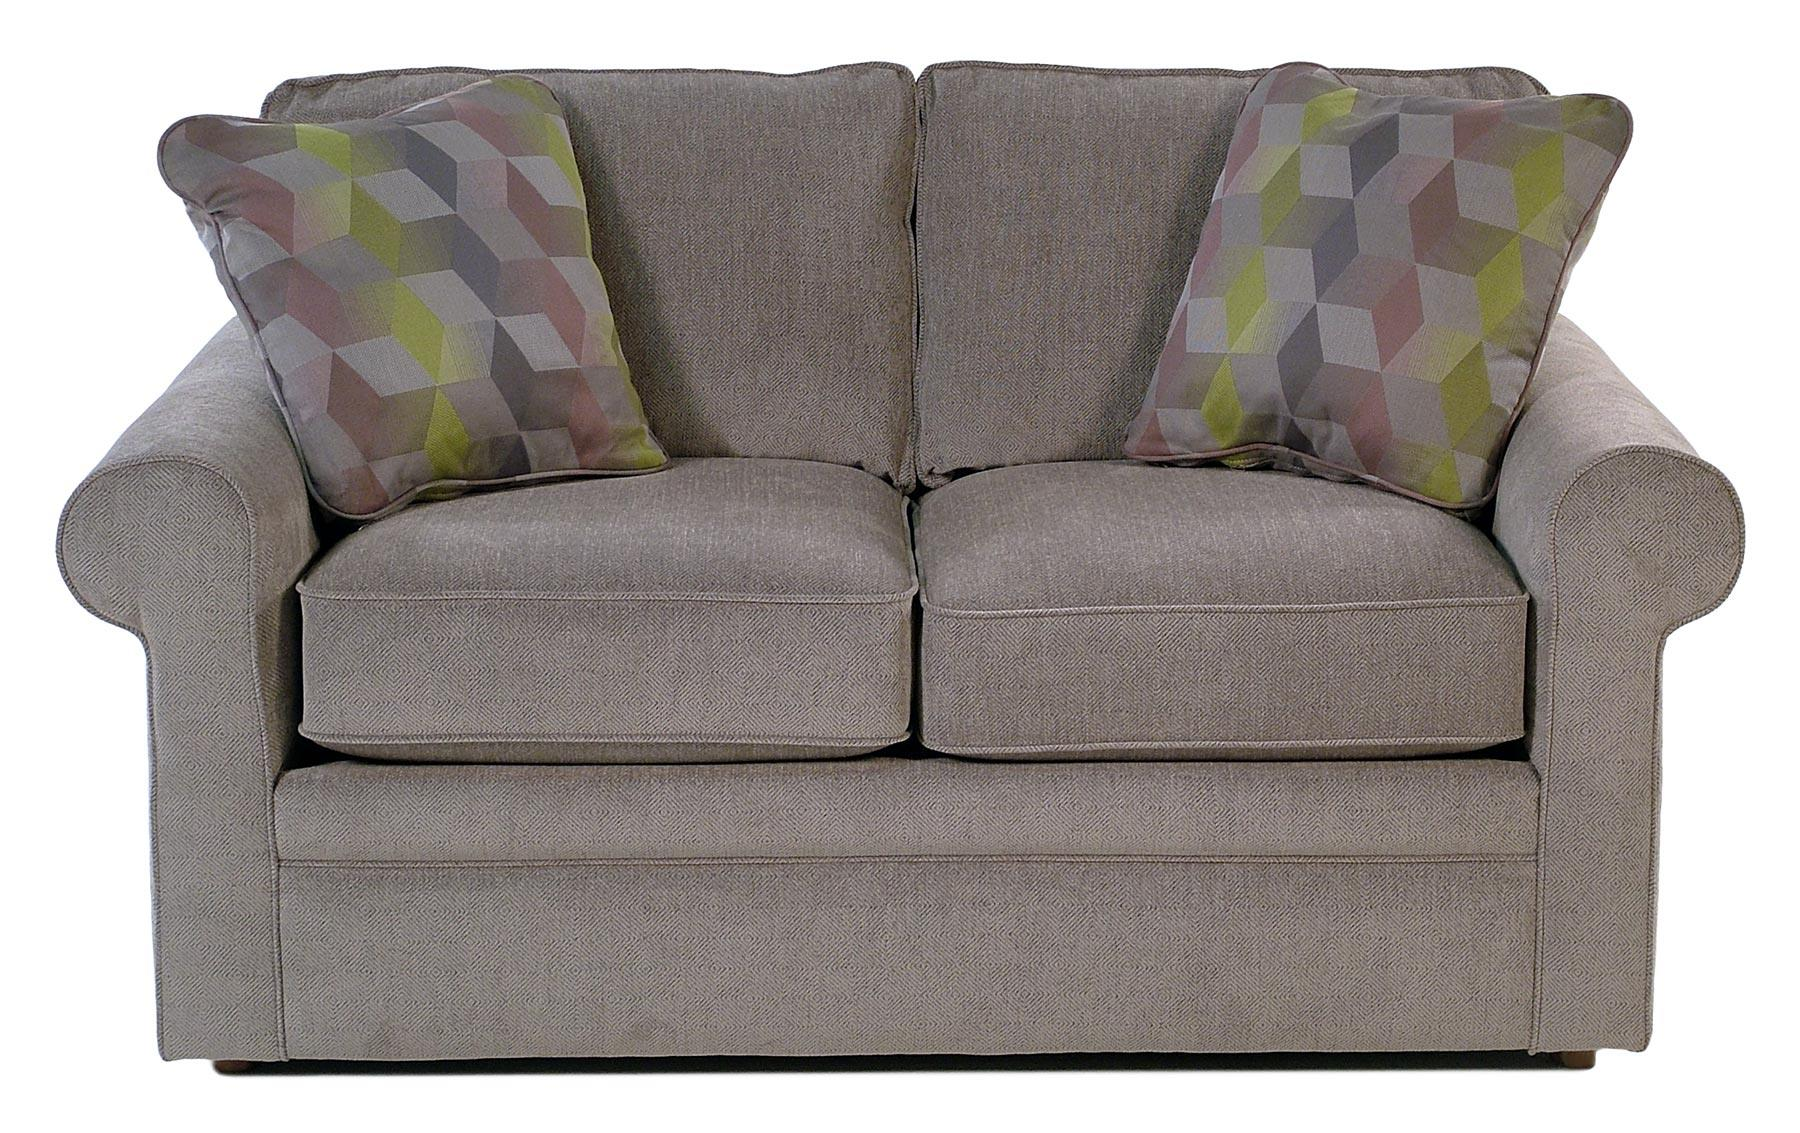 La-Z-Boy Baltic Loveseat w/ Rolled Arms - Item Number: 630494-C124153